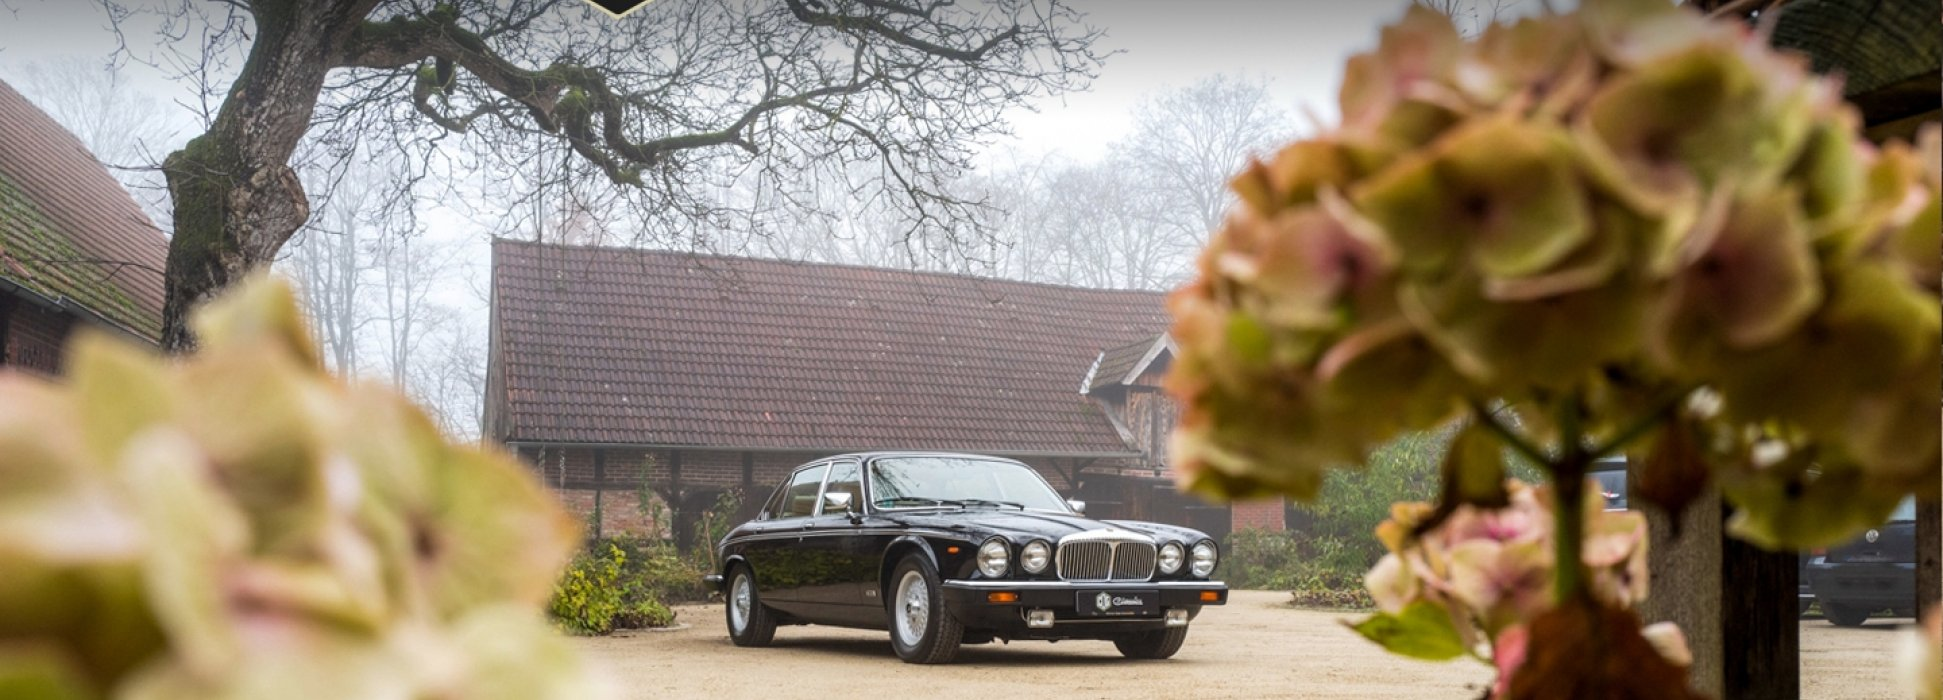 Jaguar Daimler Double Six 2